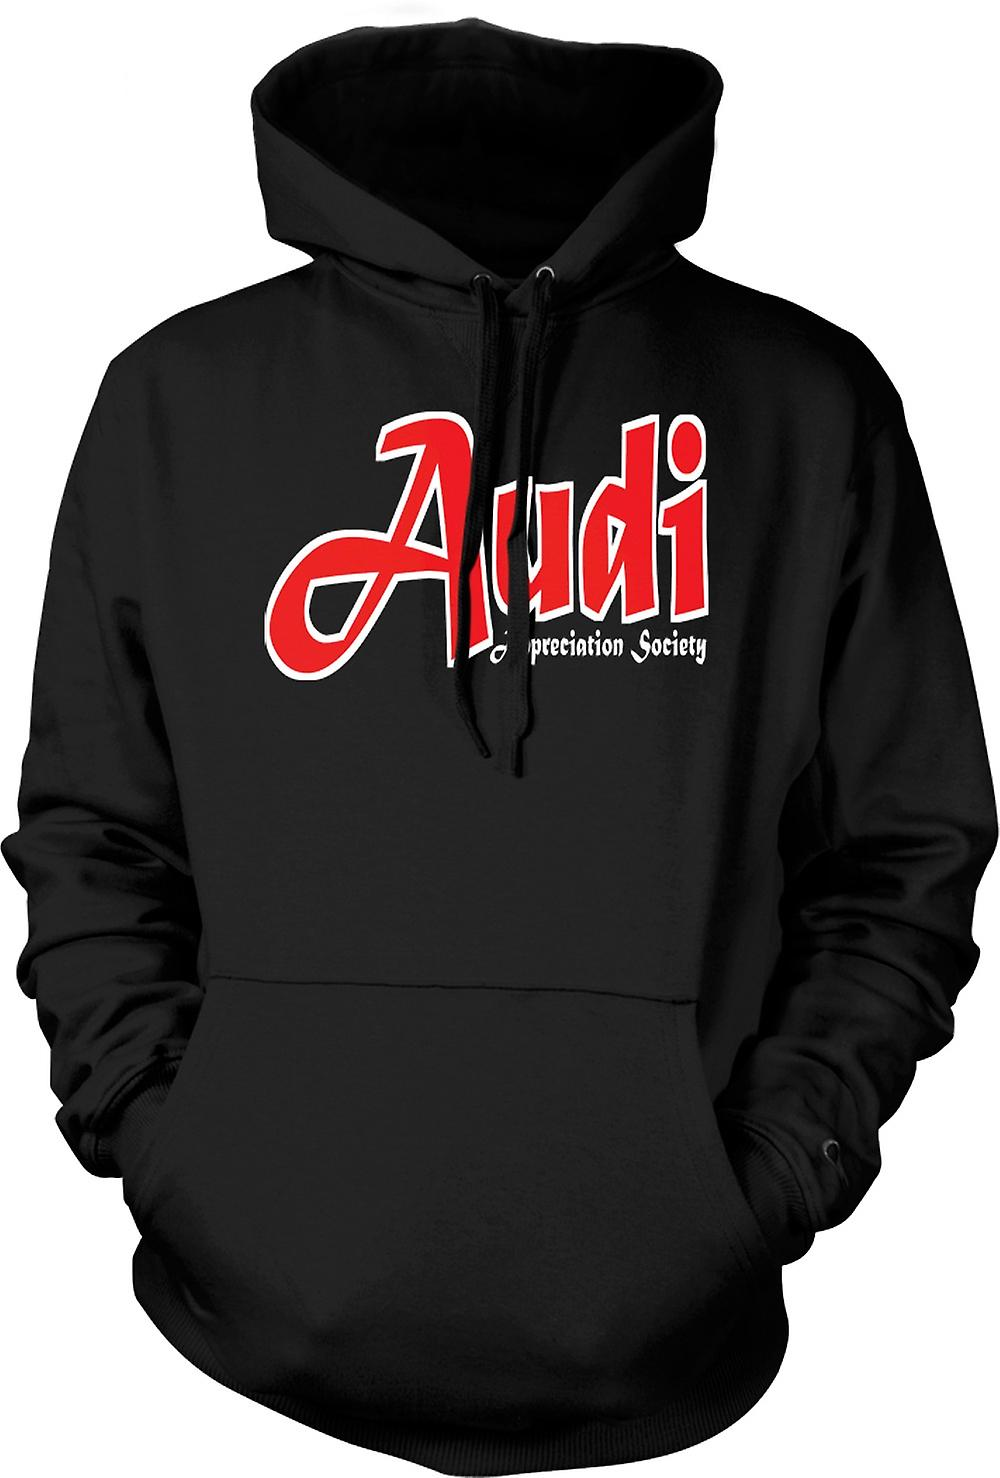 Kids Hoodie - Audi Appreciation Society